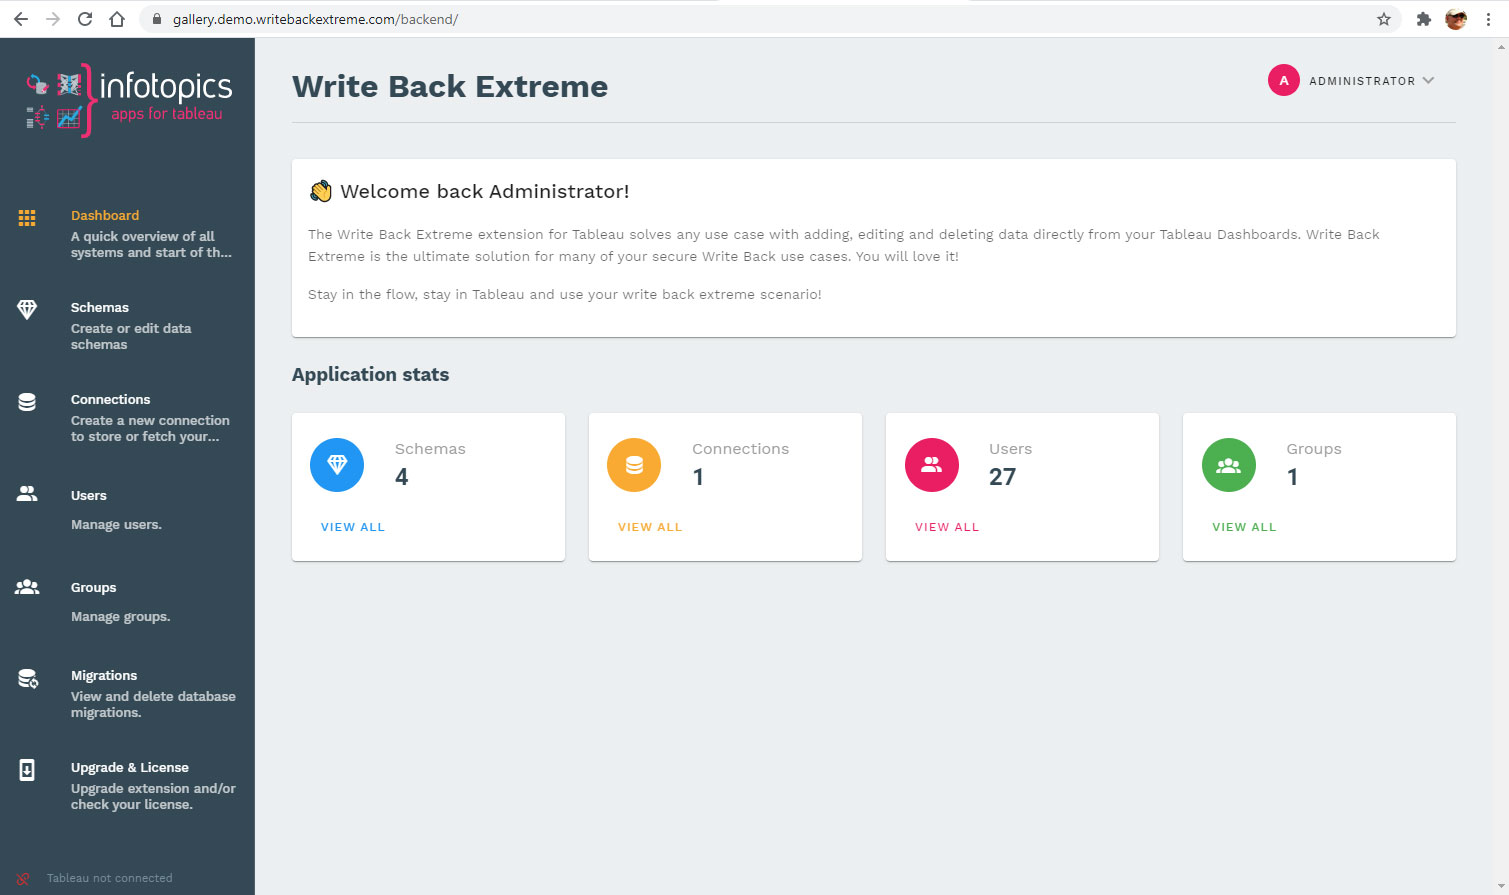 Management Console of the Write Back Extreme extension for Tableau